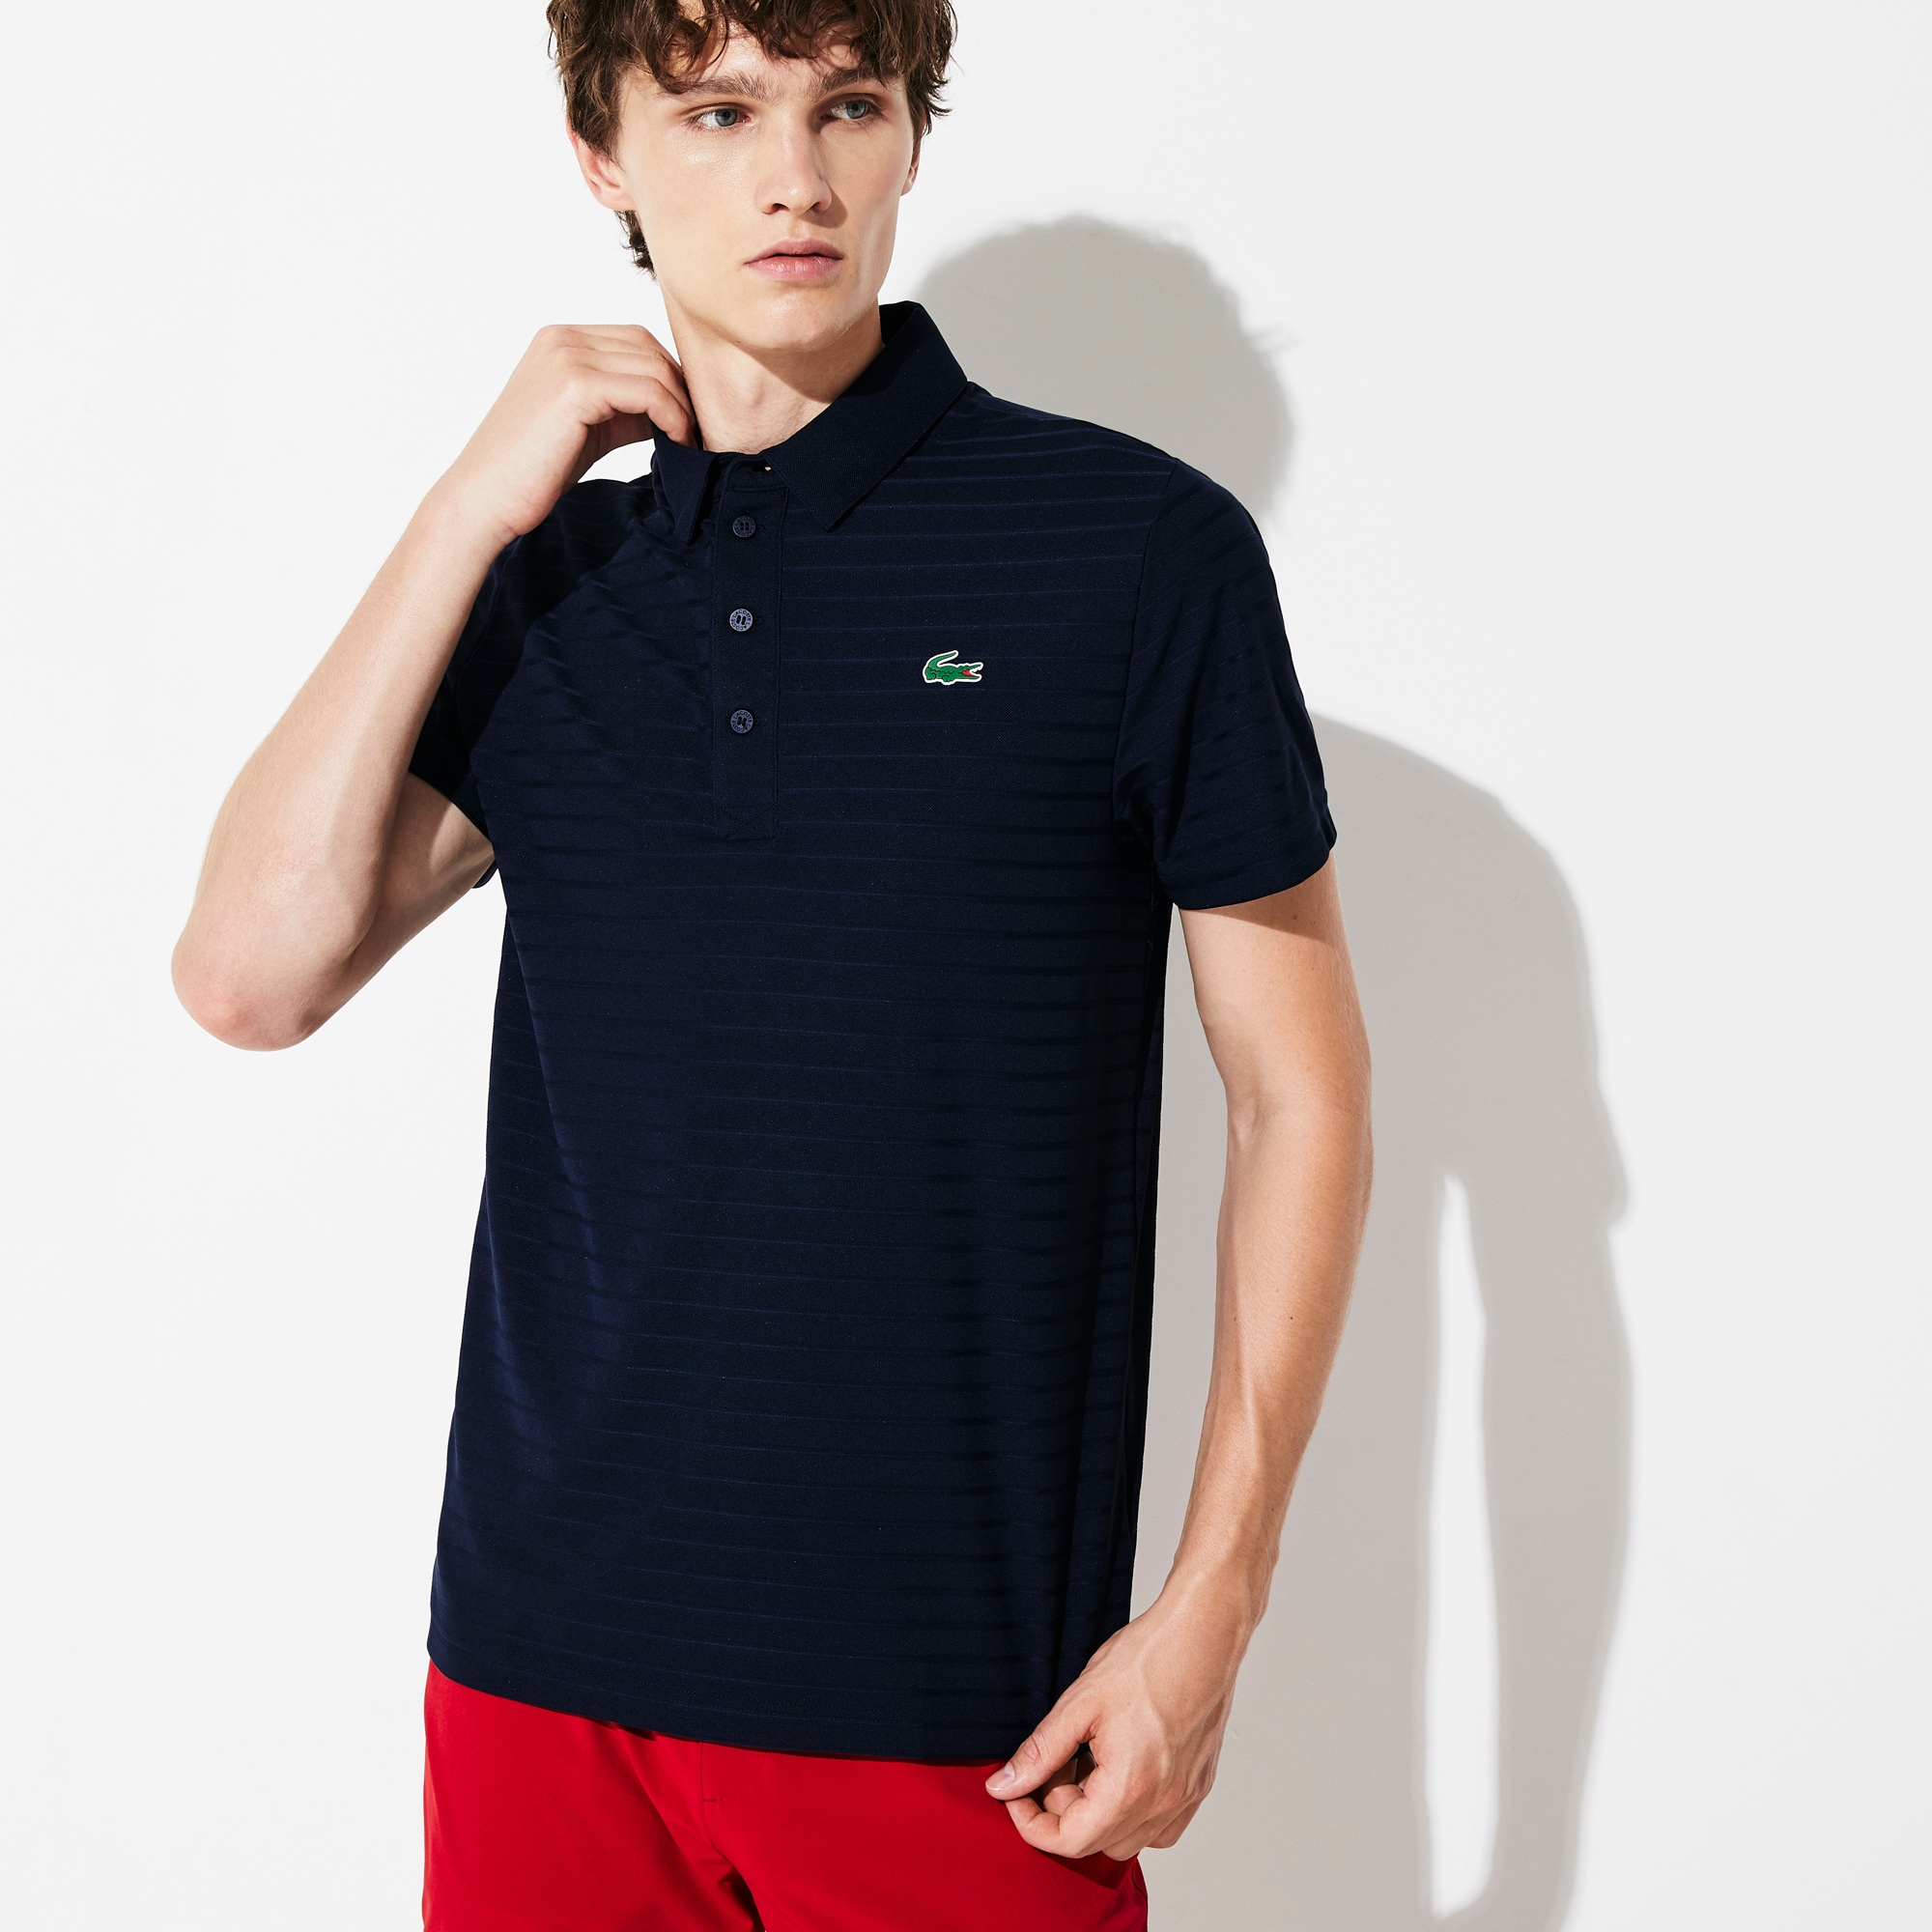 Men's Lacoste SPORT Golf Striped Tech Jacquard Jersey Polo